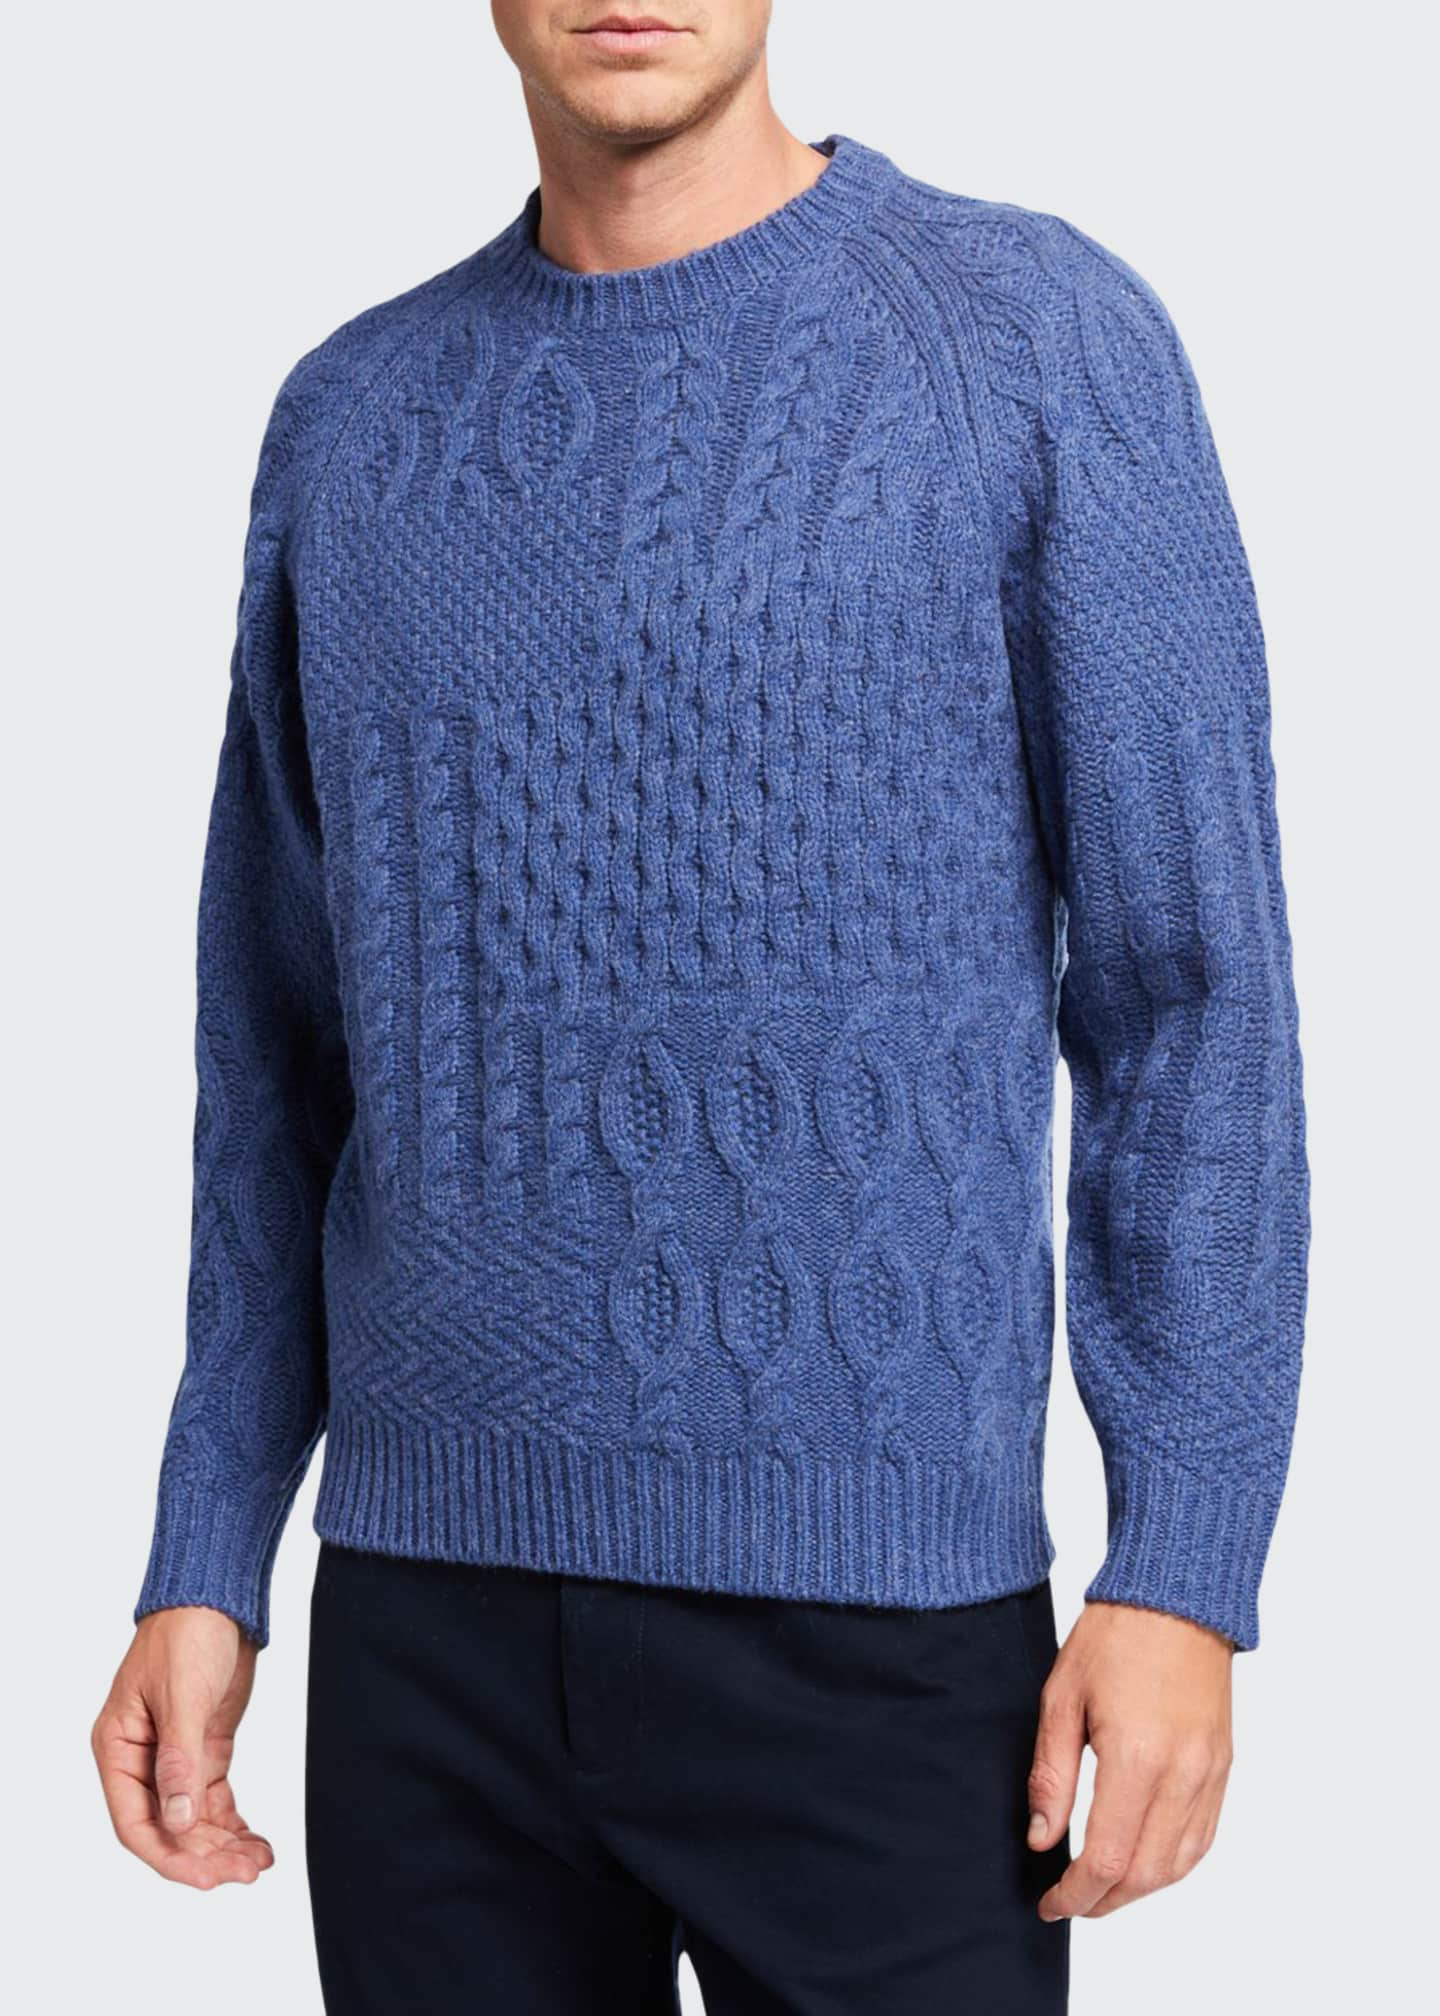 Beams Plus Men's Aran Mixed-Knit Solid Patchwork Sweater